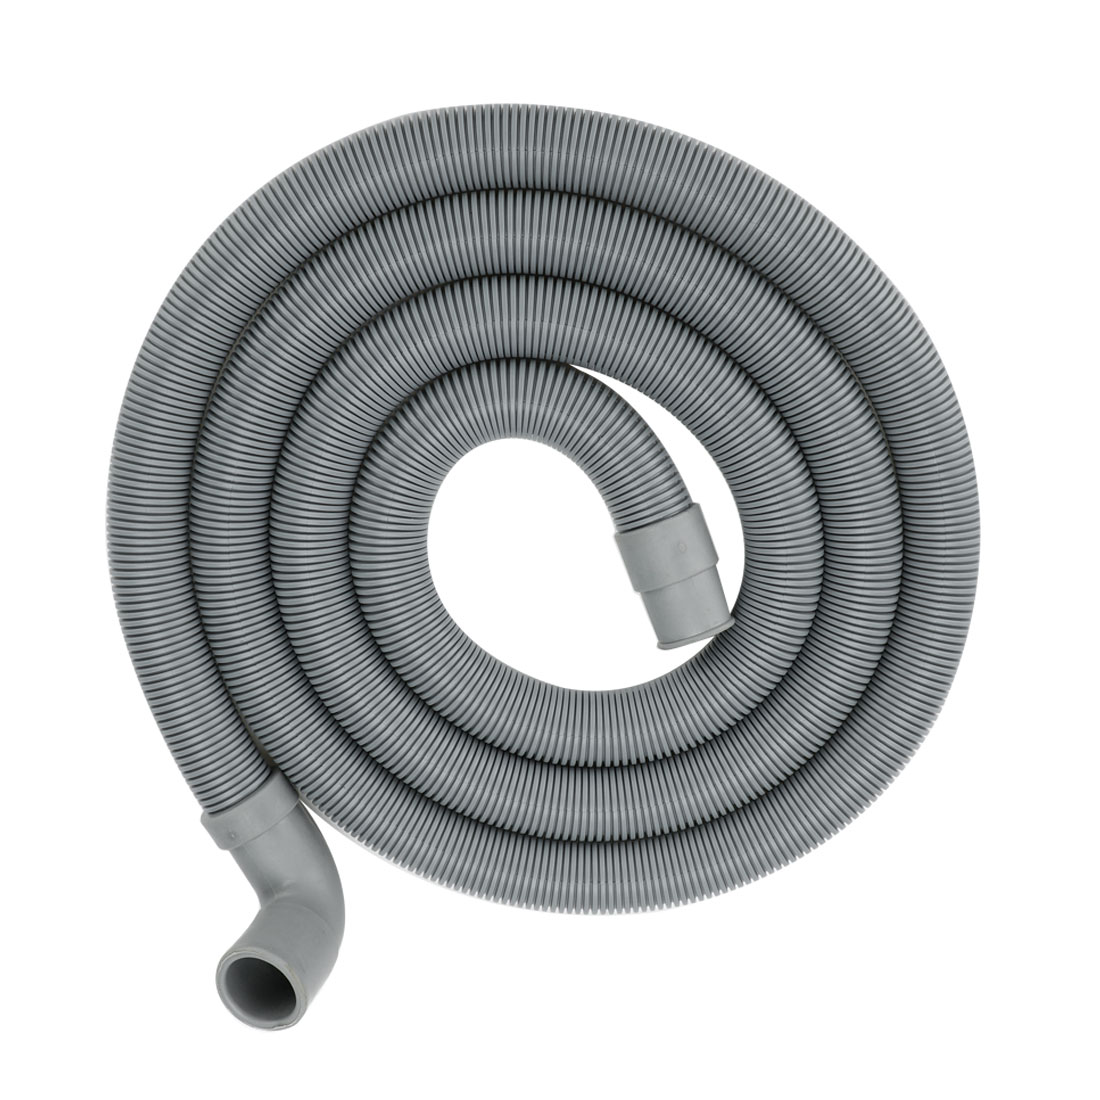 5ft 90 Degree Right Angle Elbow Washing Machine Drain Hose Extension Hose